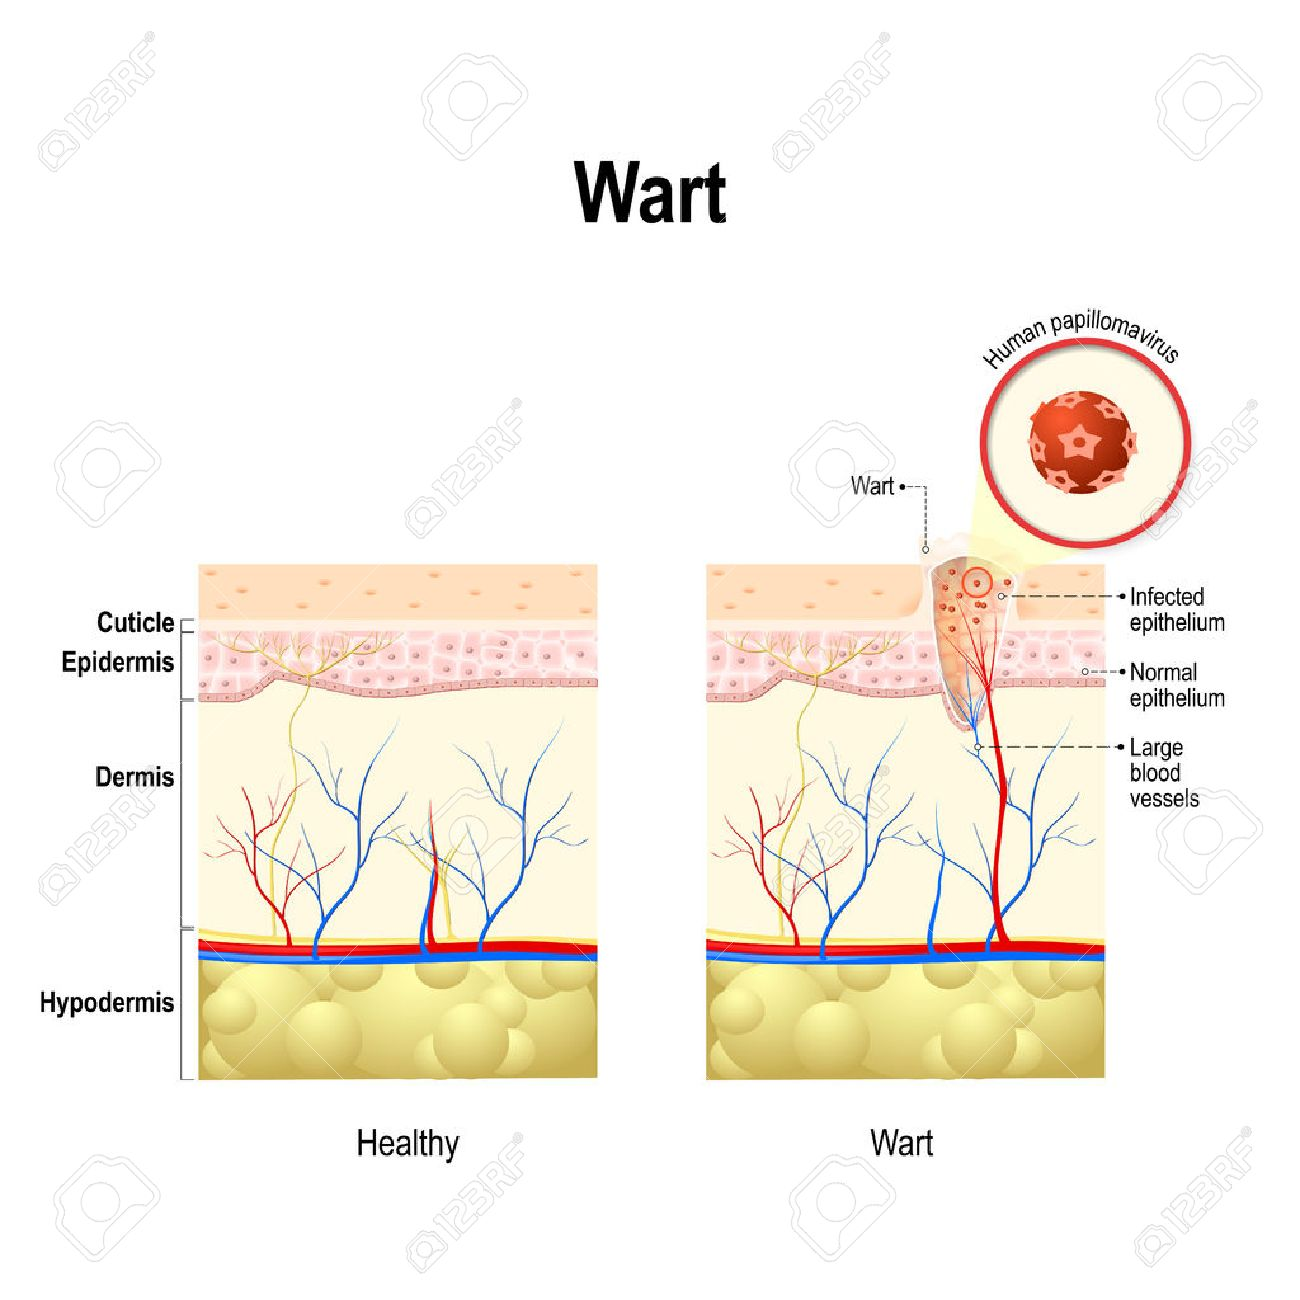 does wart hpv cause cancer